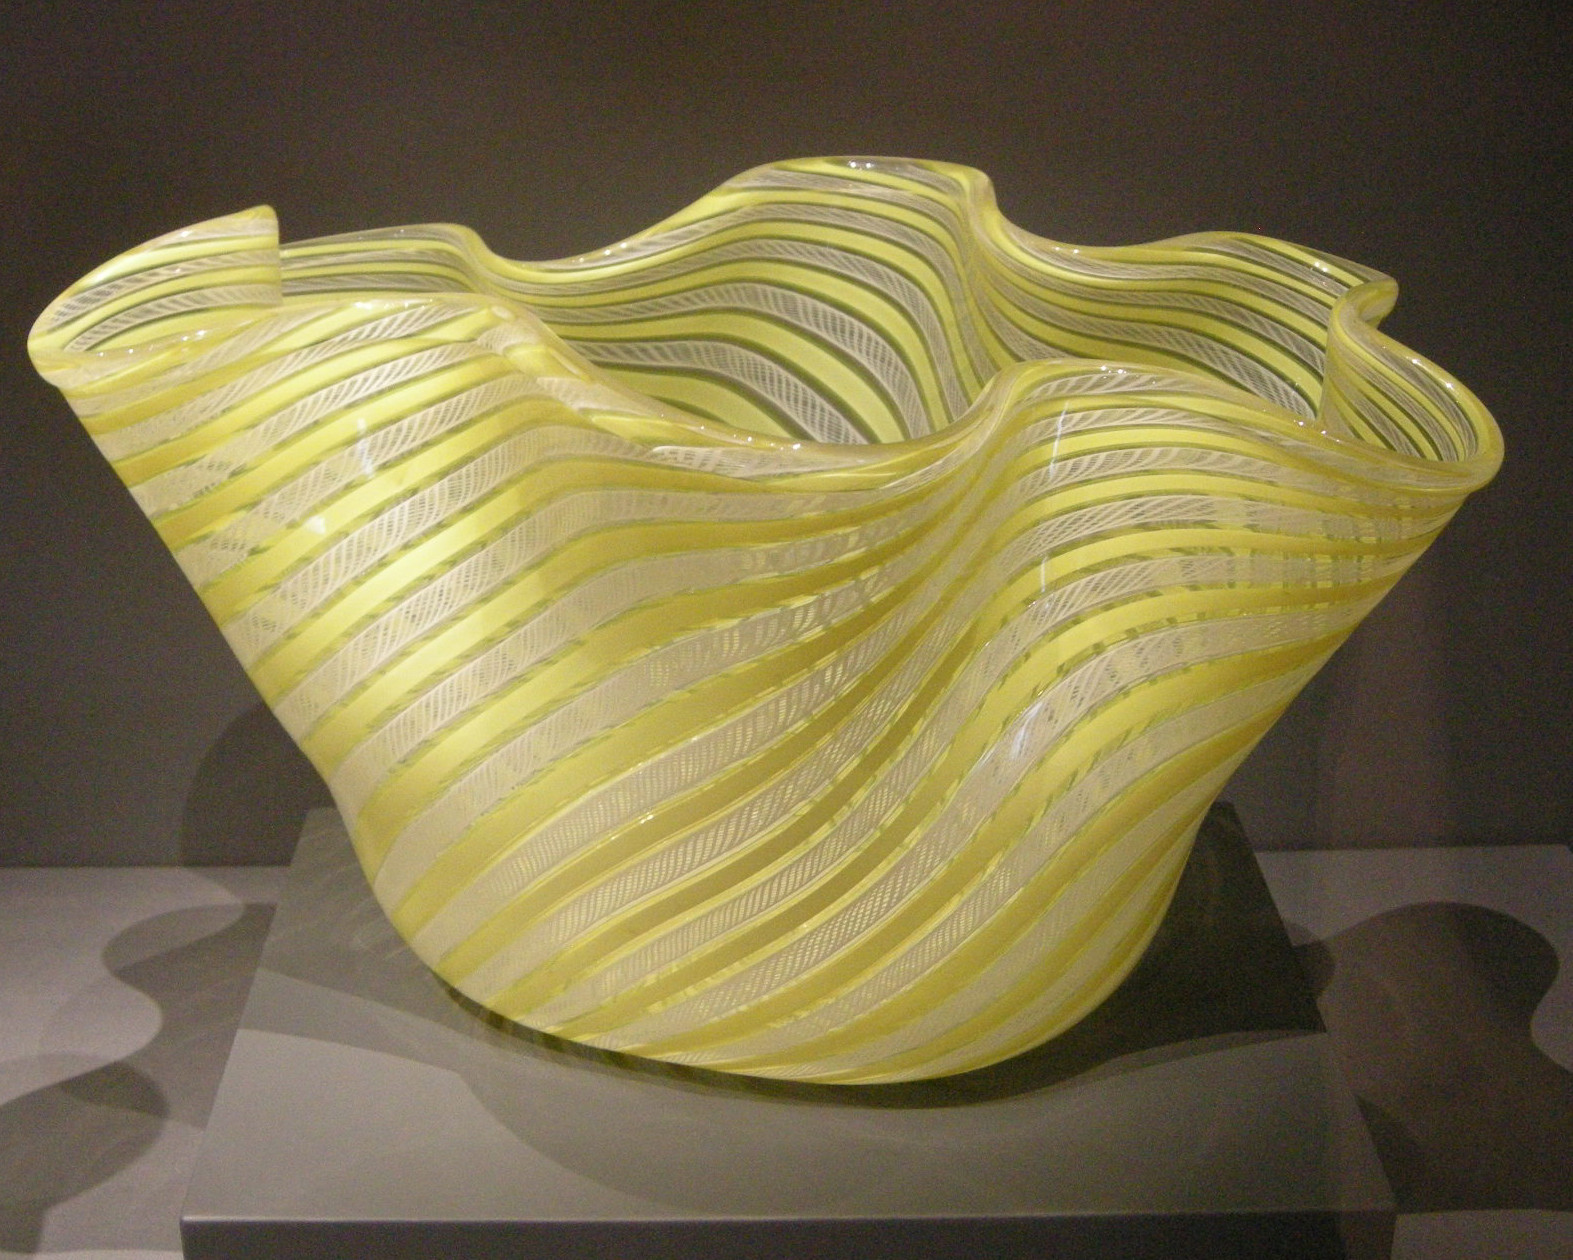 yellow vases and bowls of filevenini co murano fulvio bianconi contenitore 1949 jpg in filevenini co murano fulvio bianconi contenitore 1949